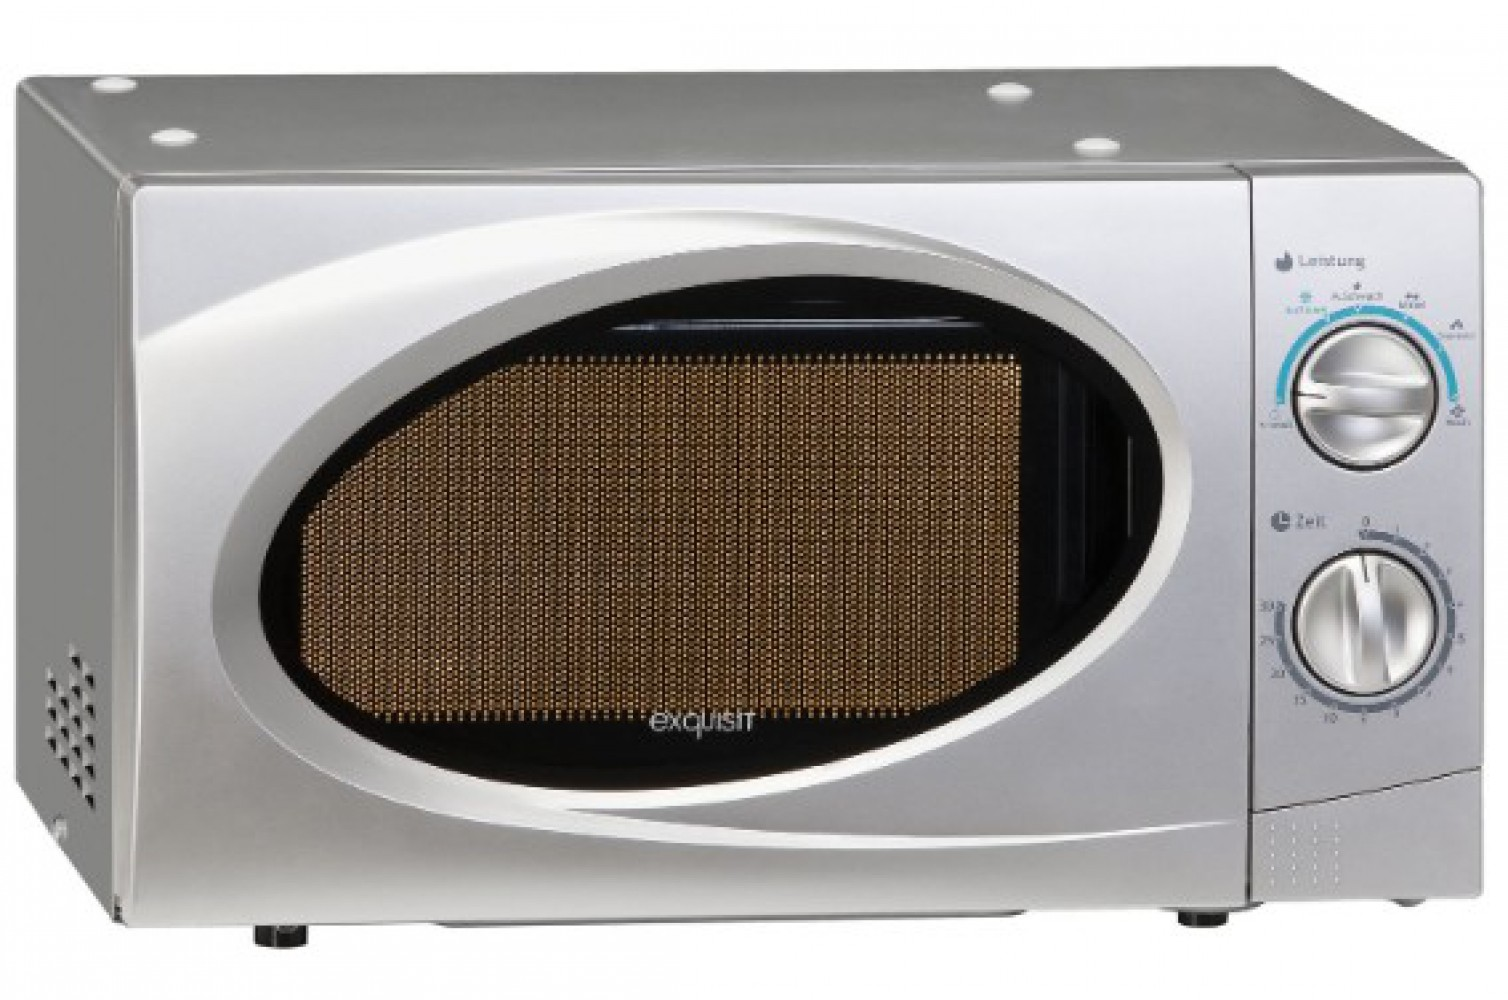 MW WP700j17B-2 argent, micro-ondes